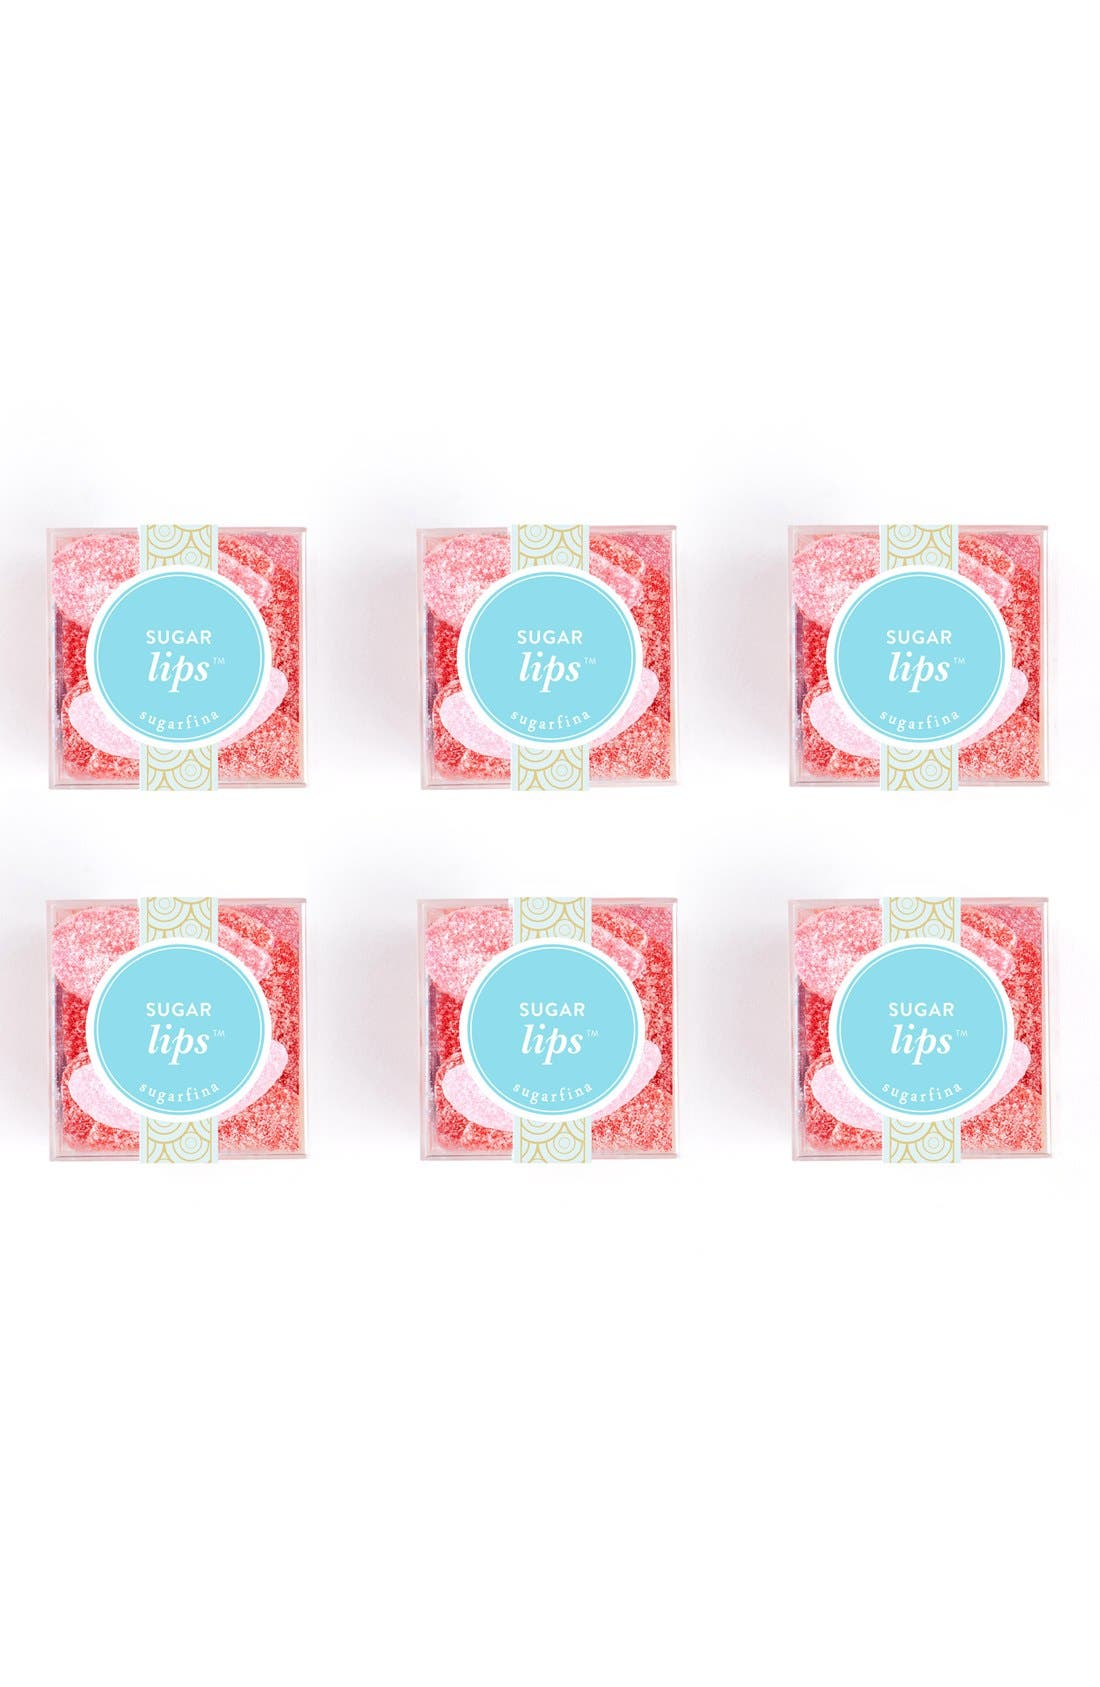 Main Image - Sugarfina Sugar Lips Set of 6 Party Pack